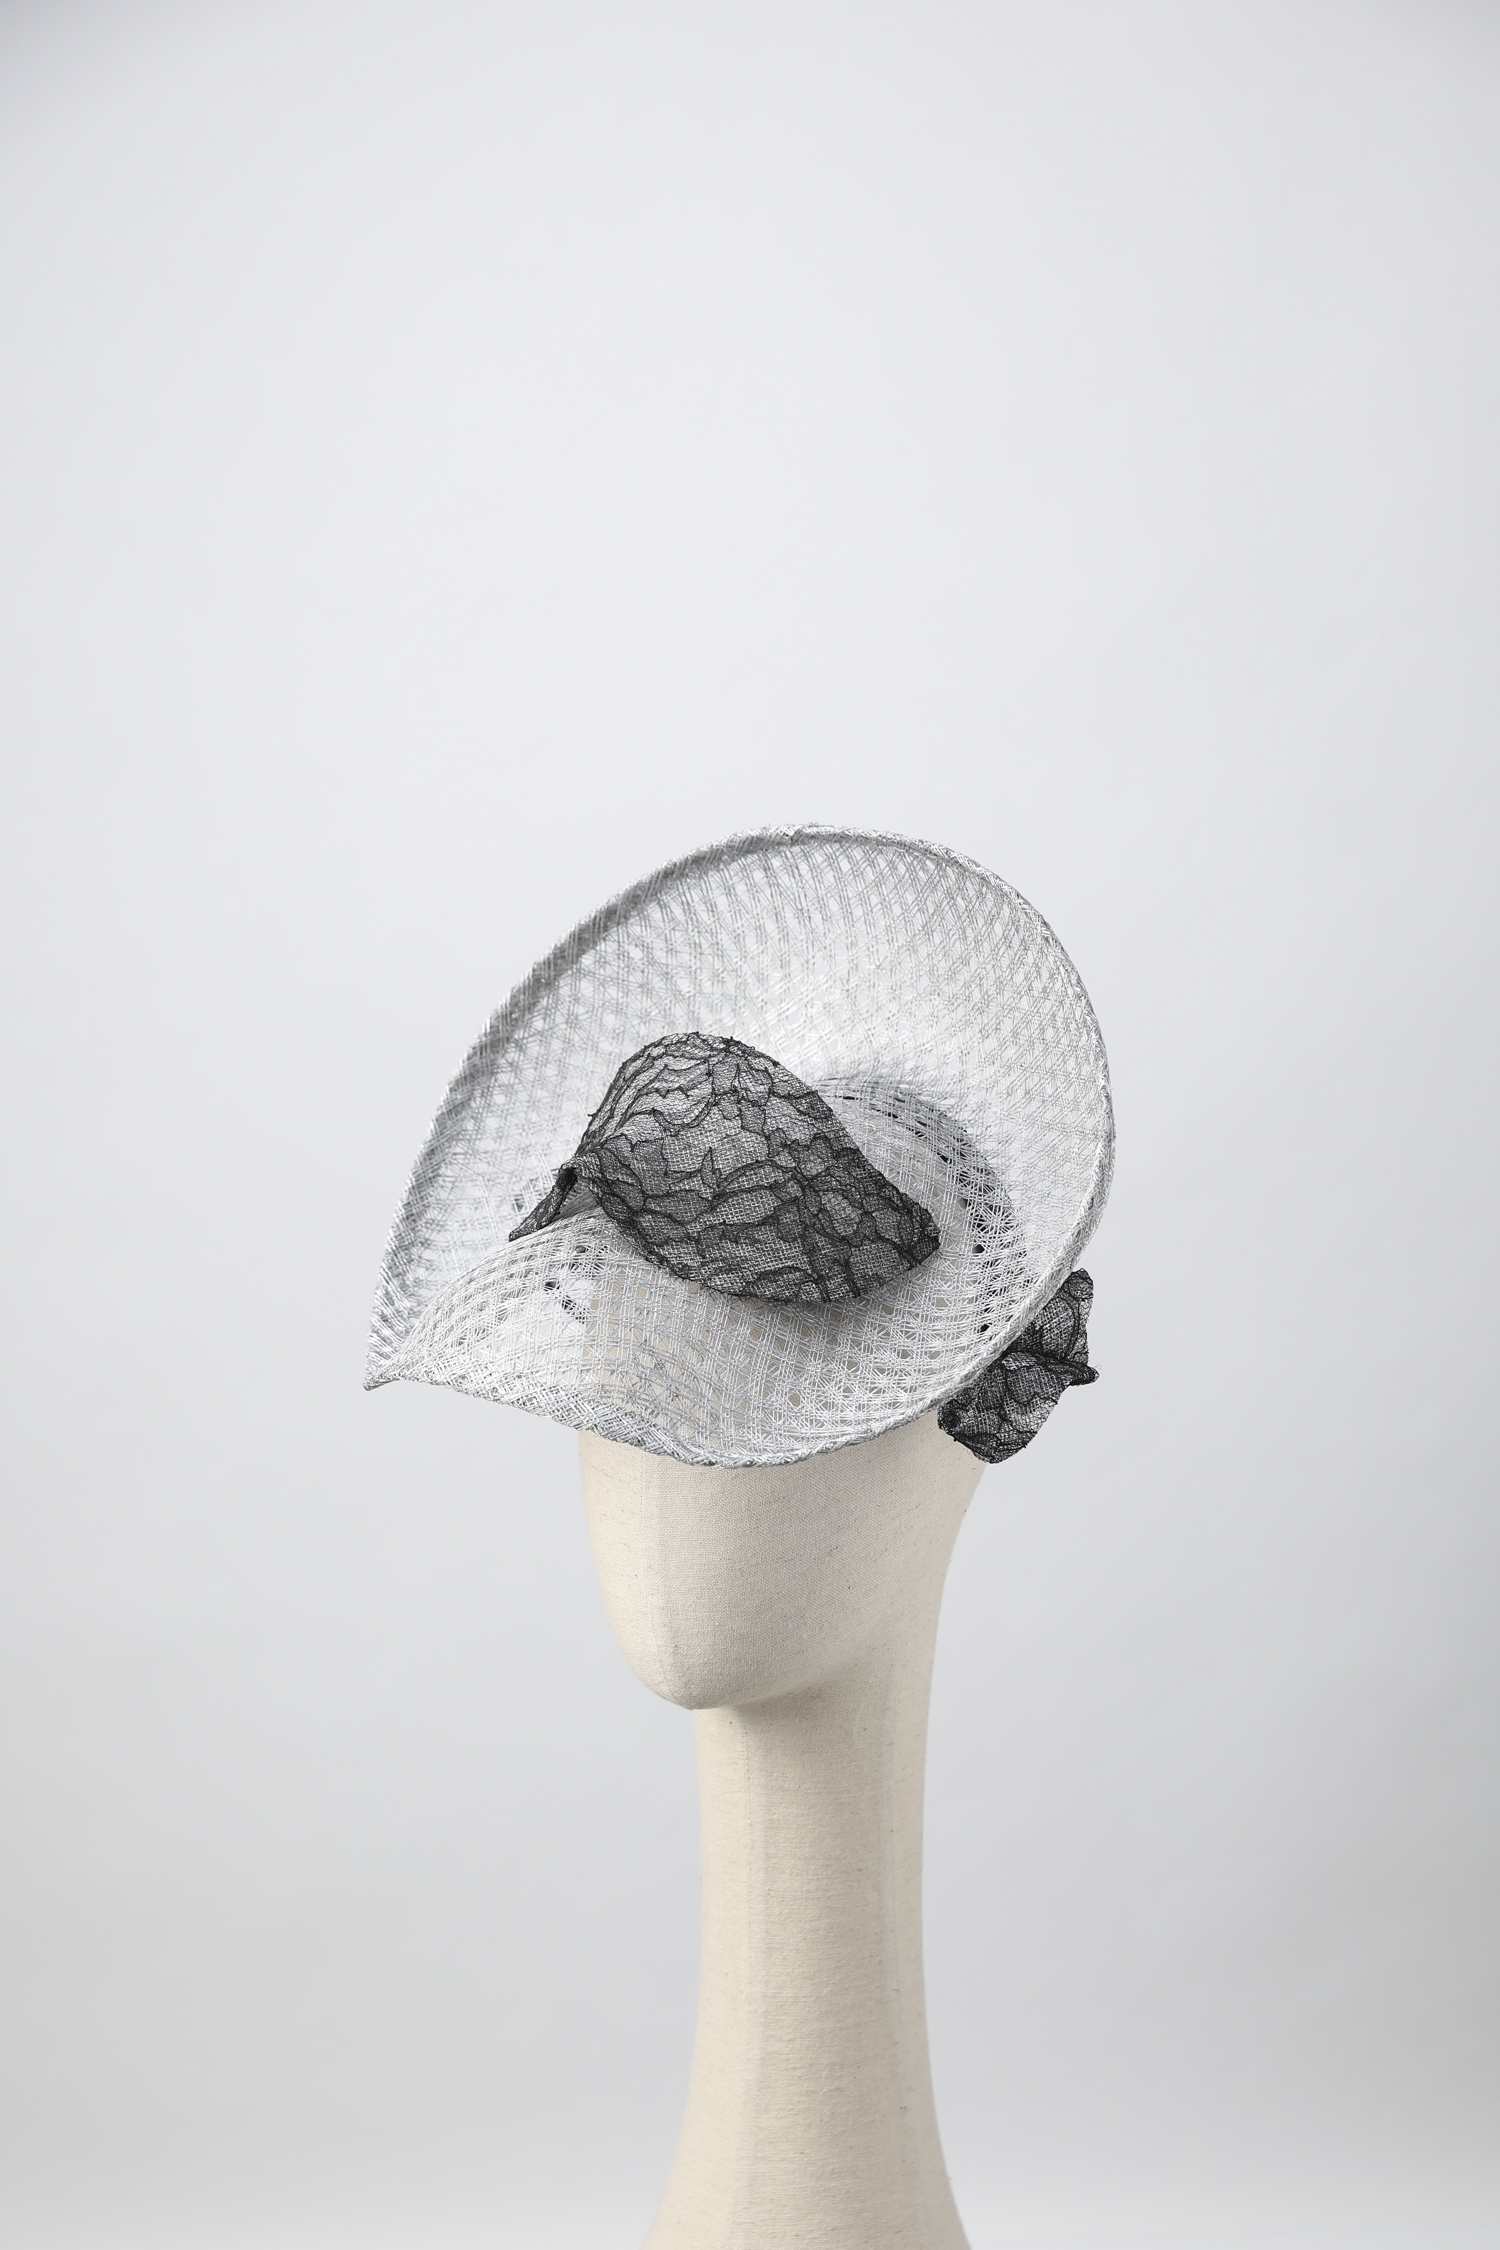 Copy of Jaycow Millinery by Jay Cheng Sample Stock 2019 (21).jpg